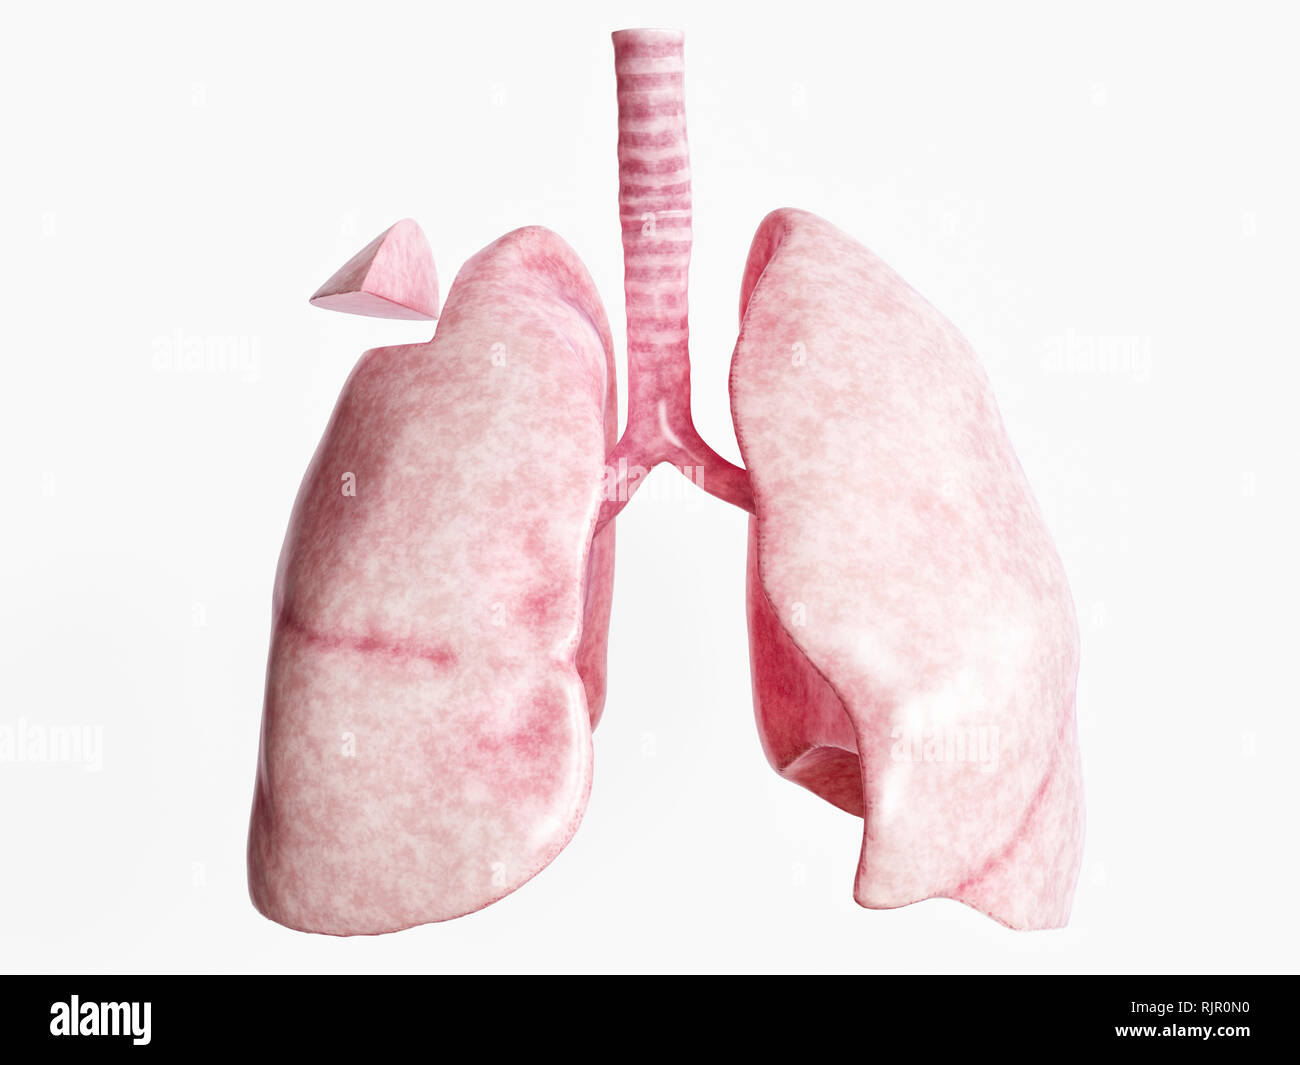 Wedge resection after severe lung disease - 1 of 4 - 3D Rendering - Stock Image